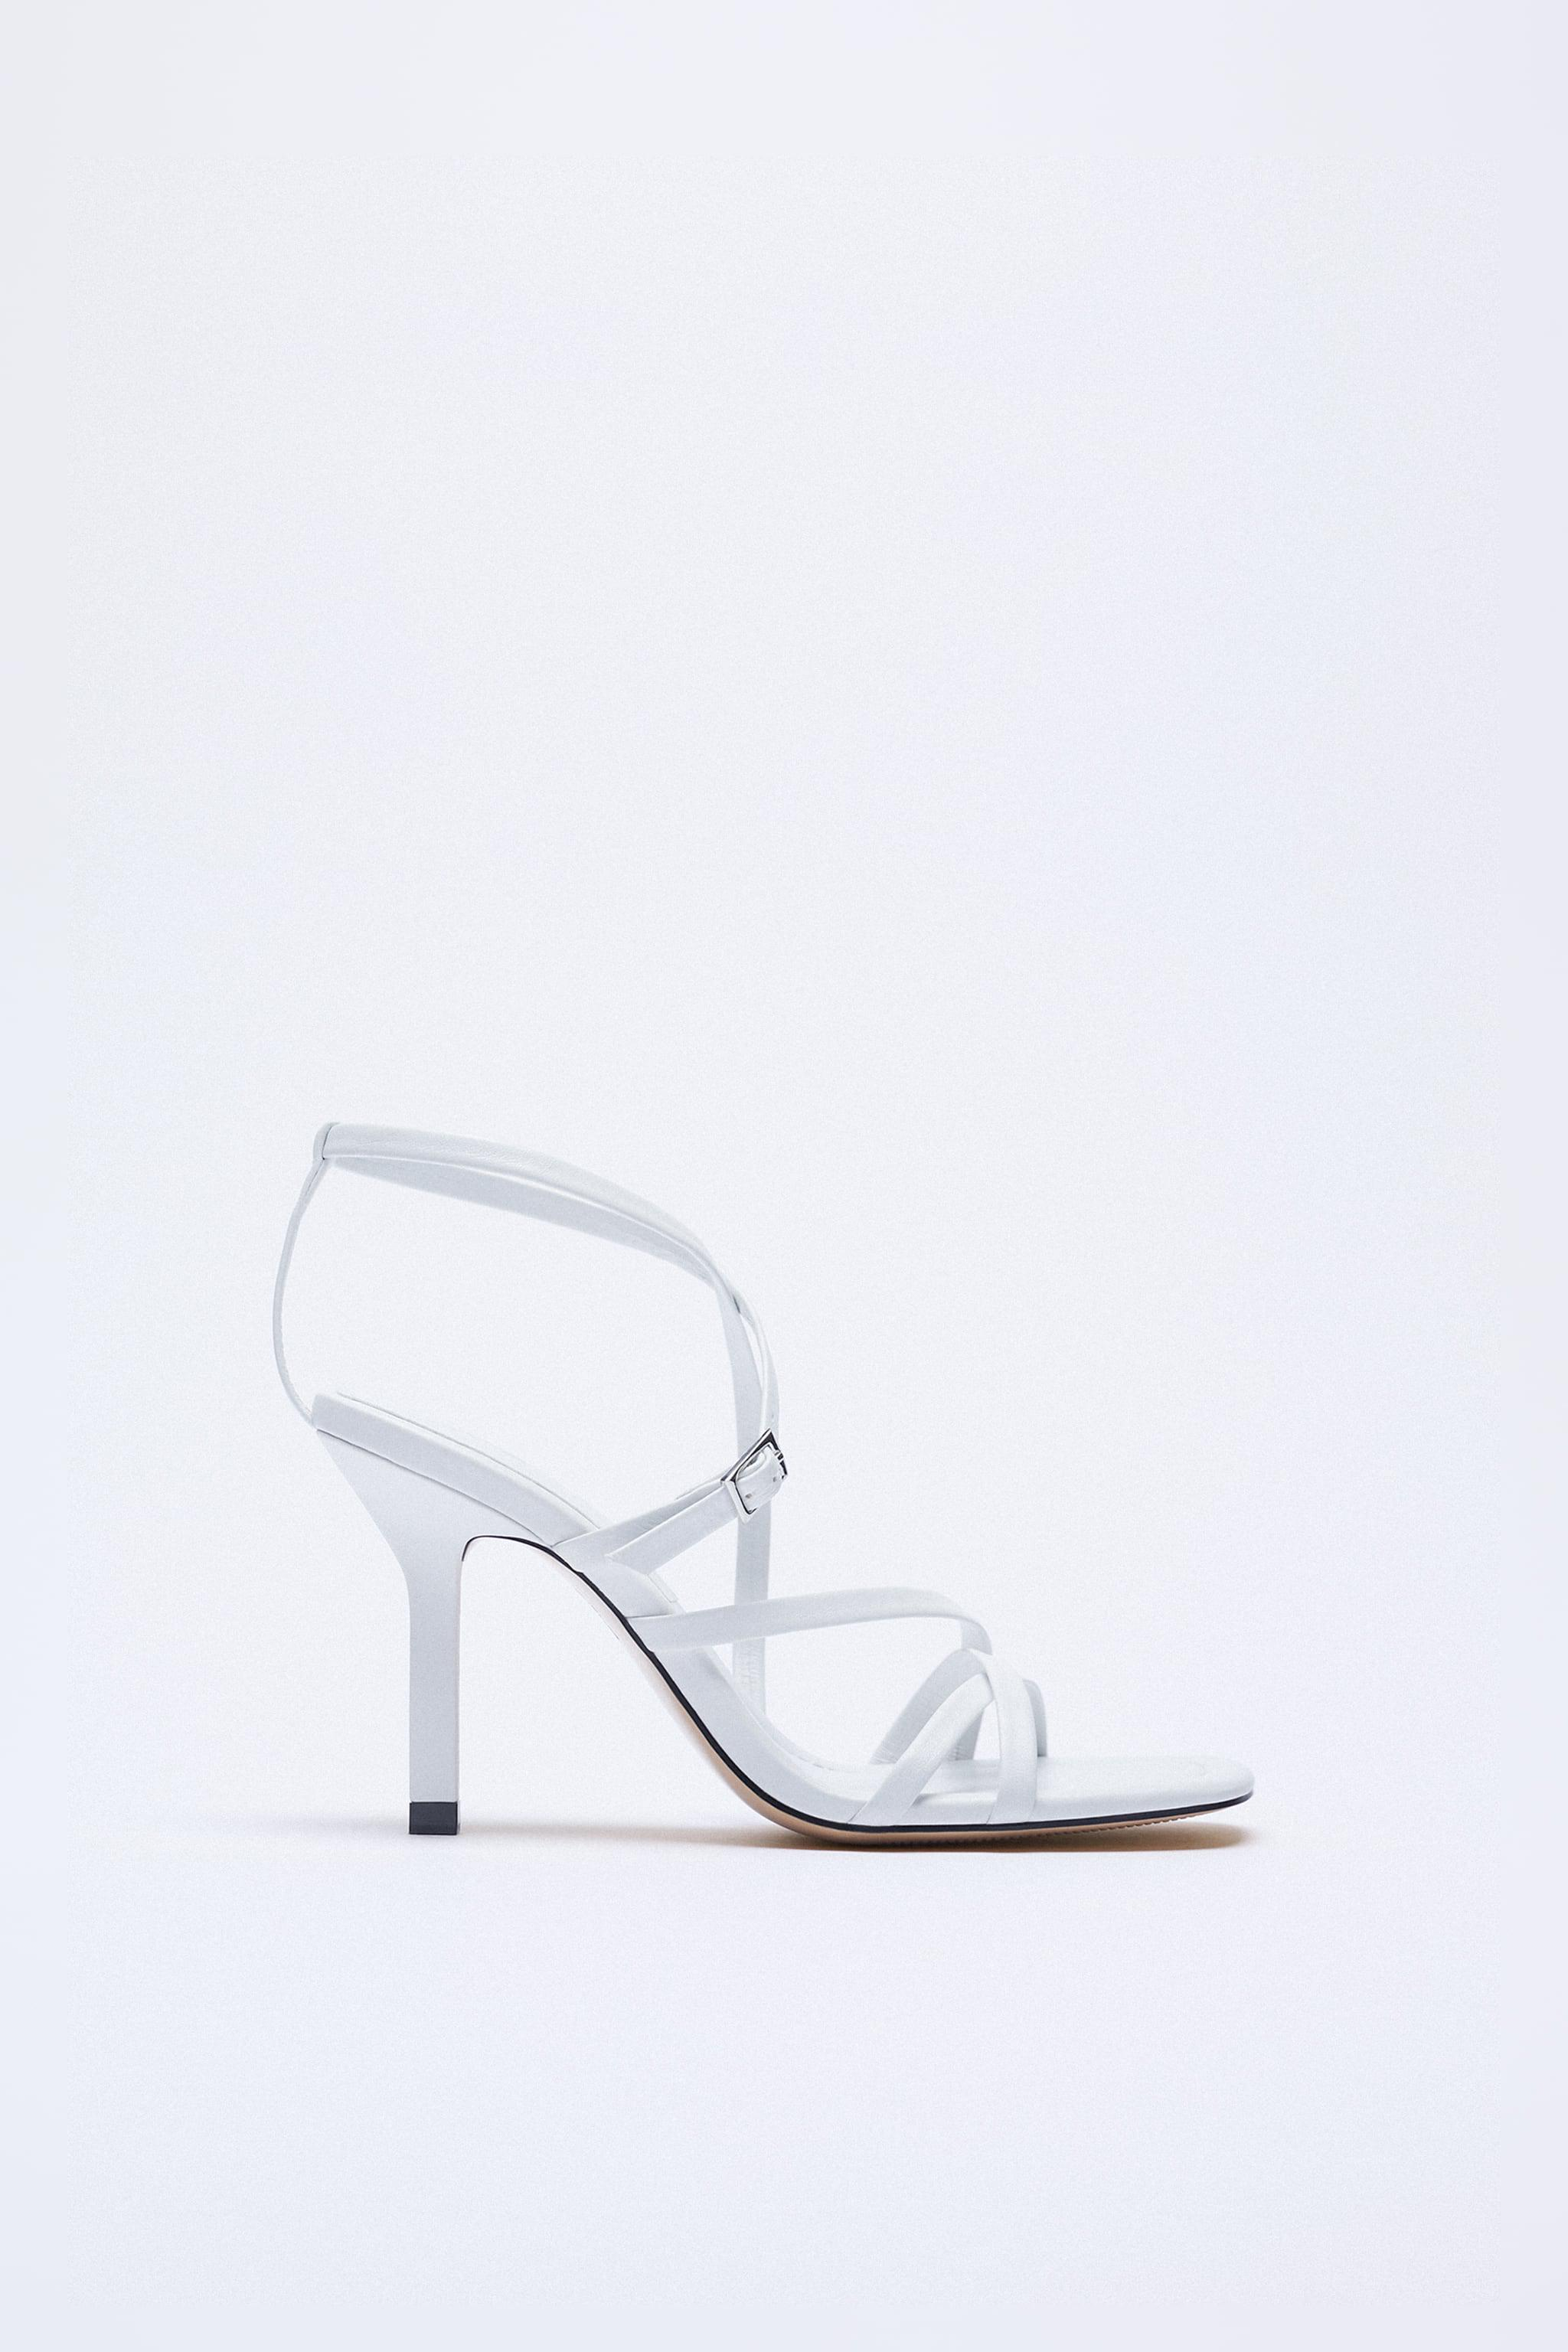 LEATHER HIGH HEEL STRAPPY SANDALS WITH BUCKLE 8